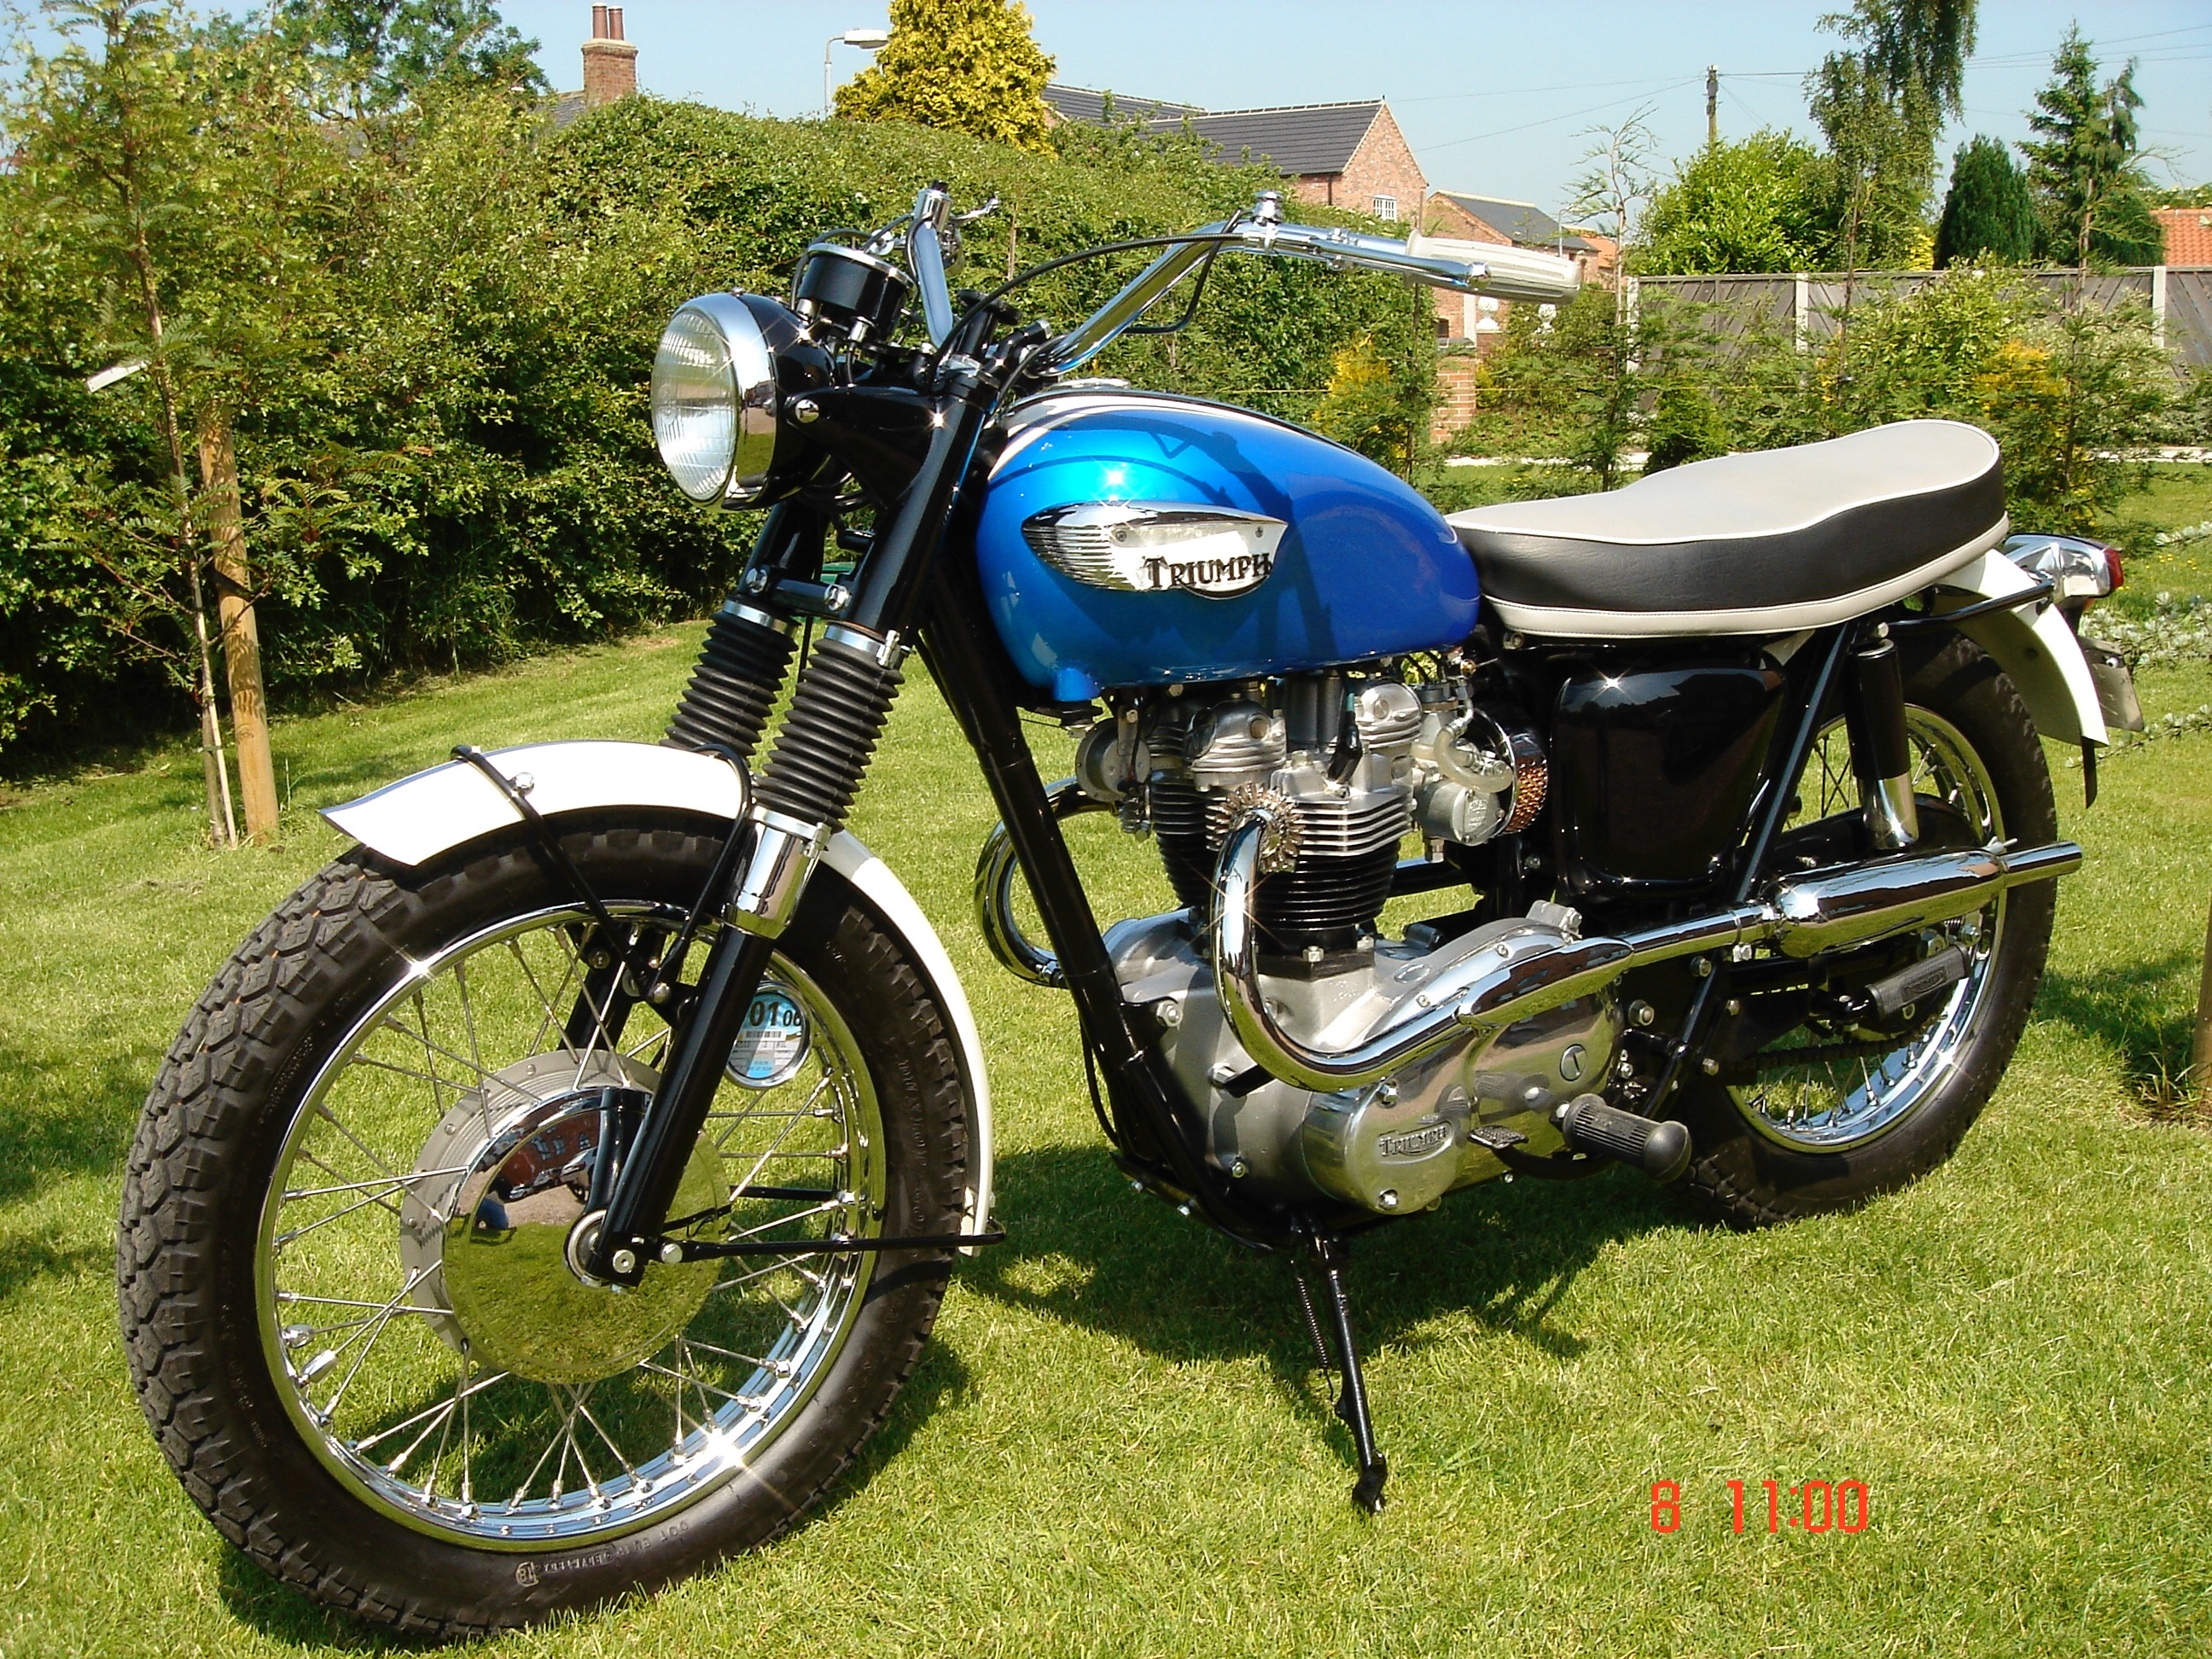 terry macdonald rebuilding the triumph meriden marque since 1963